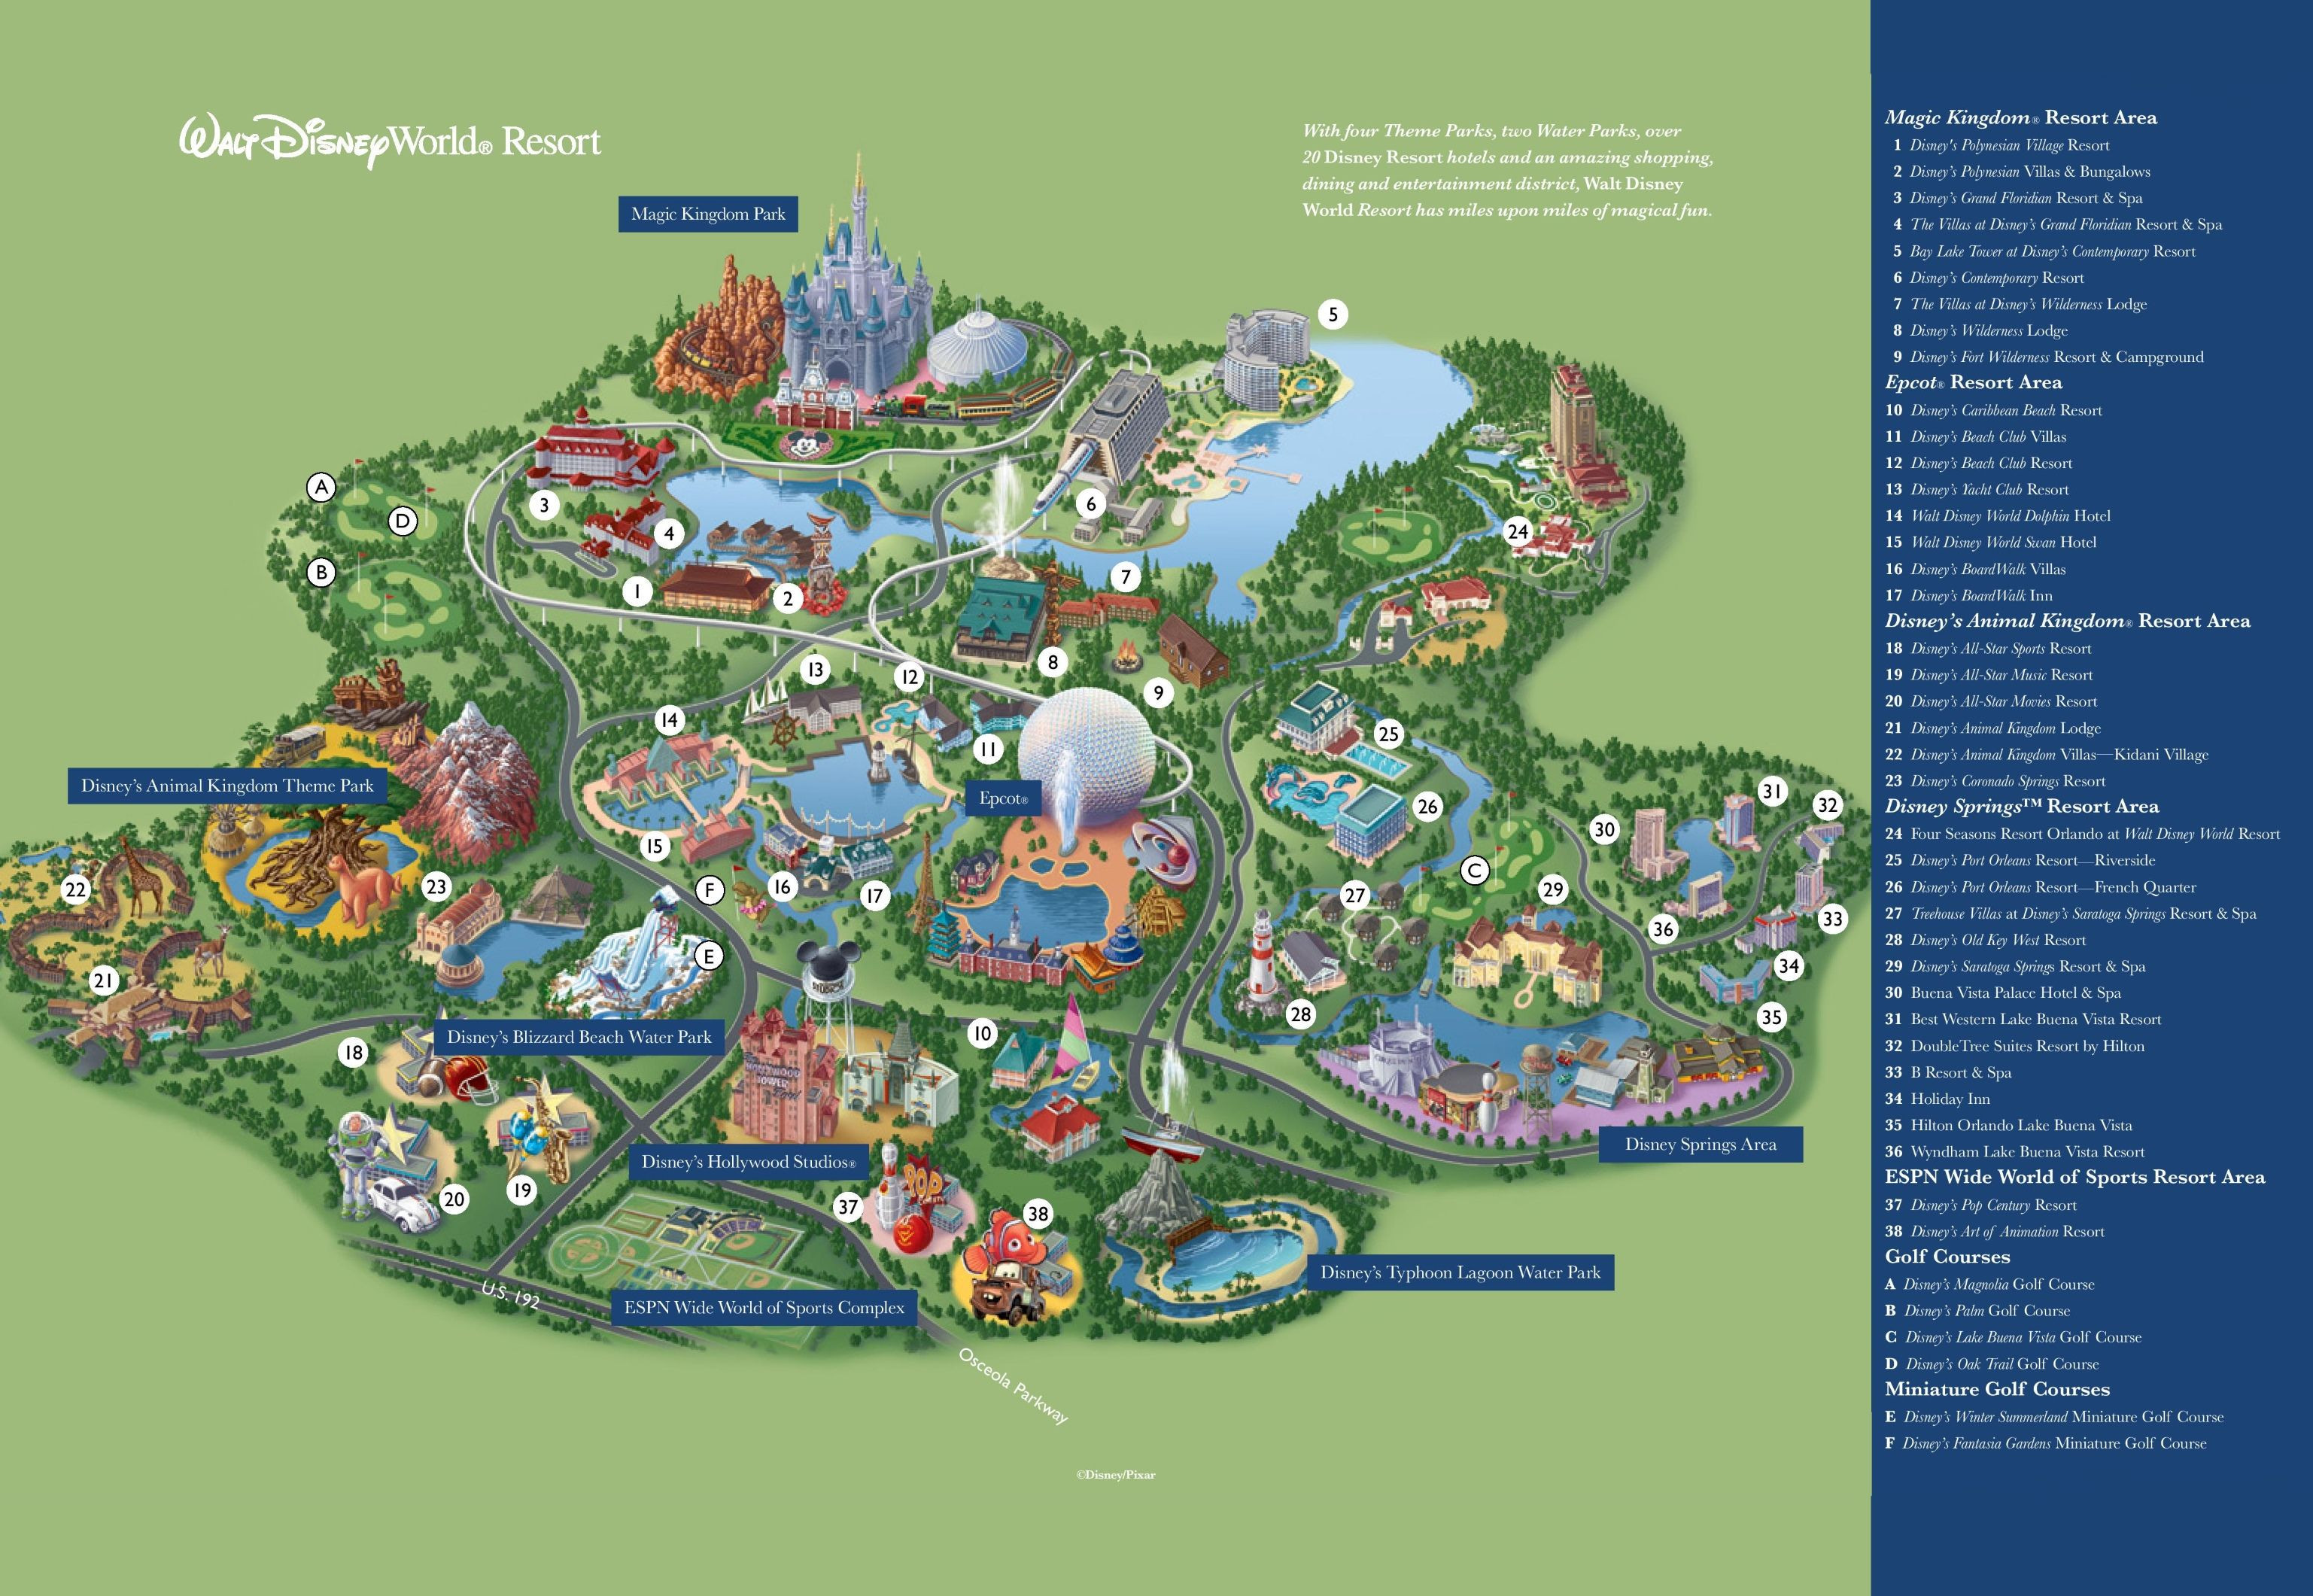 Disneyland Park California Valid Orlando Walt Disney World Resort Disneyland Park California Map Printable